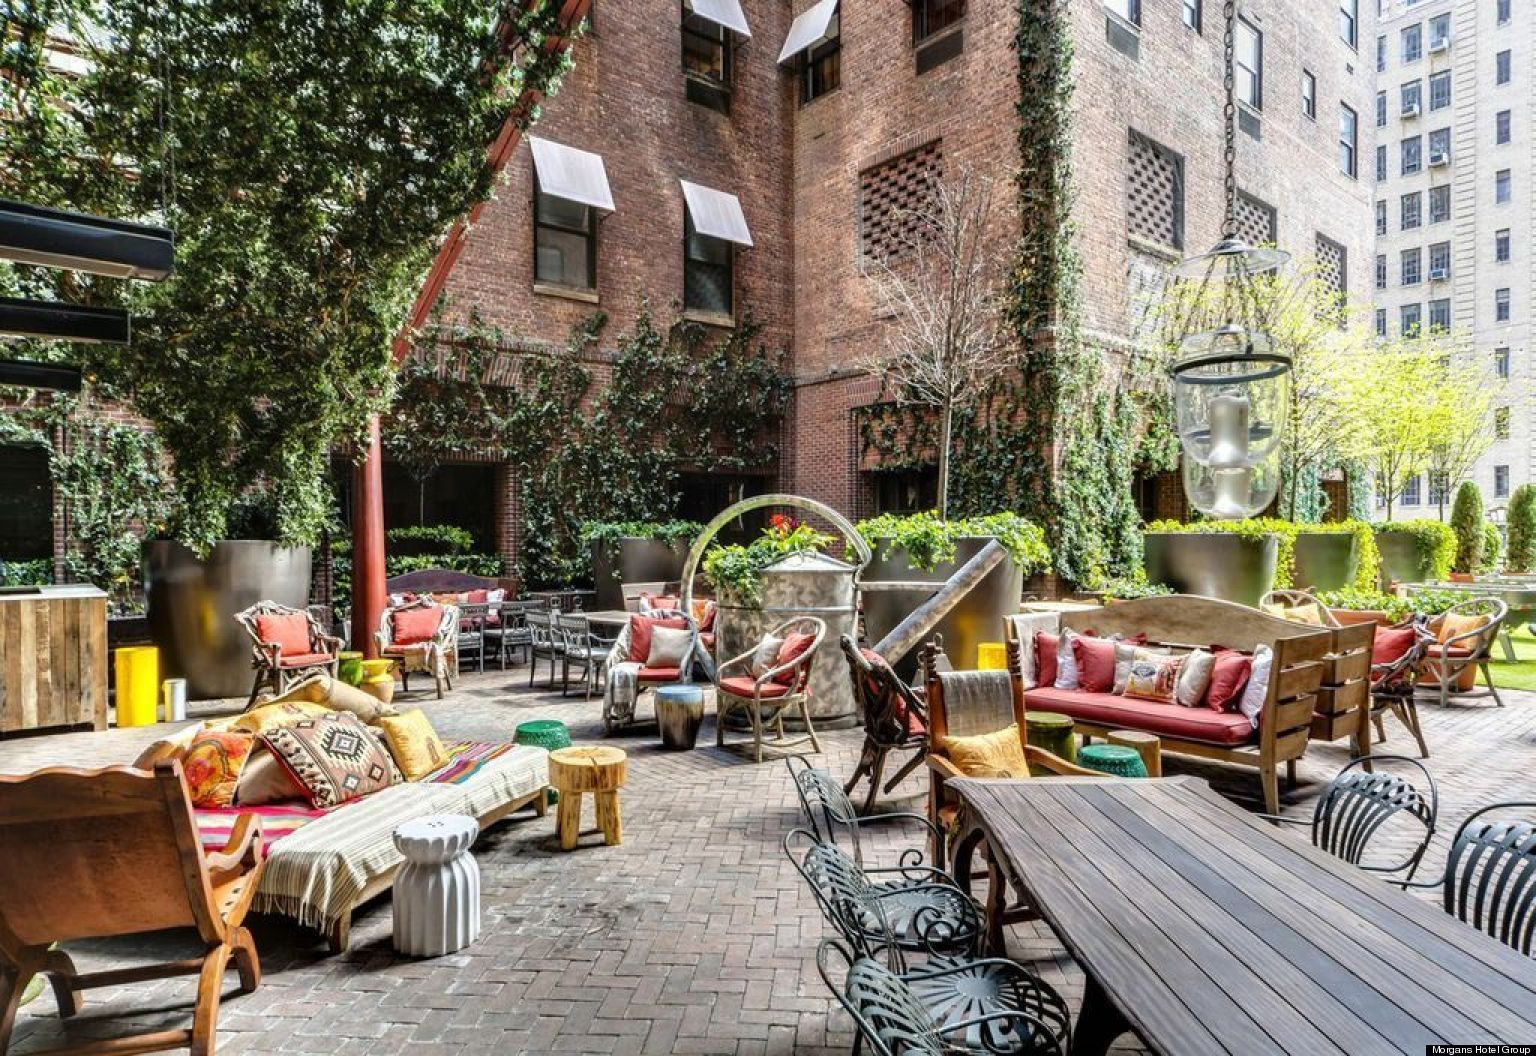 Rooftop wedding venues in nyc - Stay And Dine At The Nomad Hotel In New York While You Travel During The Spring You Ll Be Close To Madison Square Park Where You Can Spot Cherry B